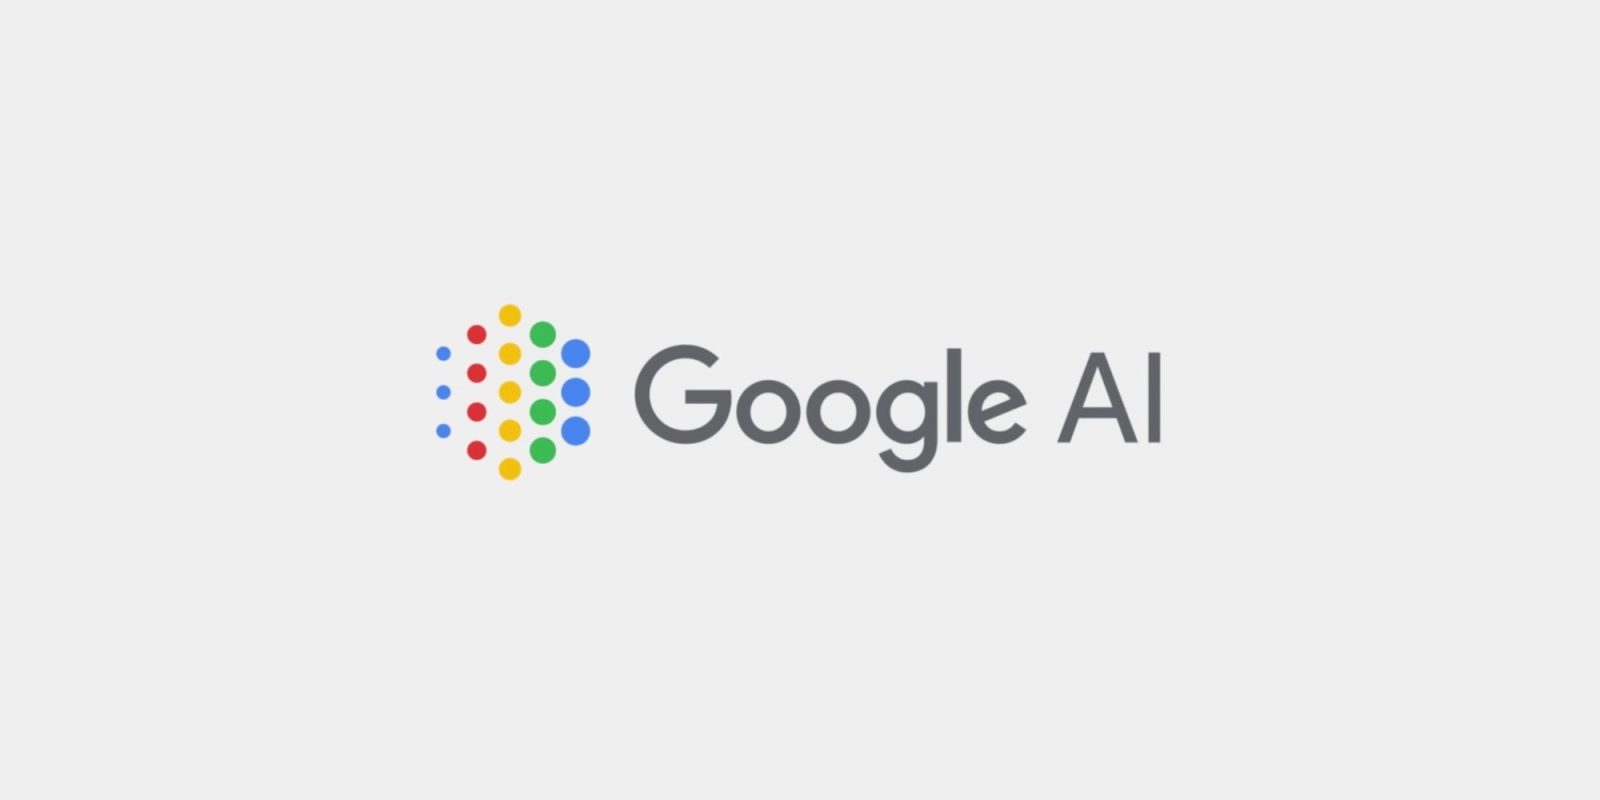 Google working on human-like chatbots that contextually respond to anything